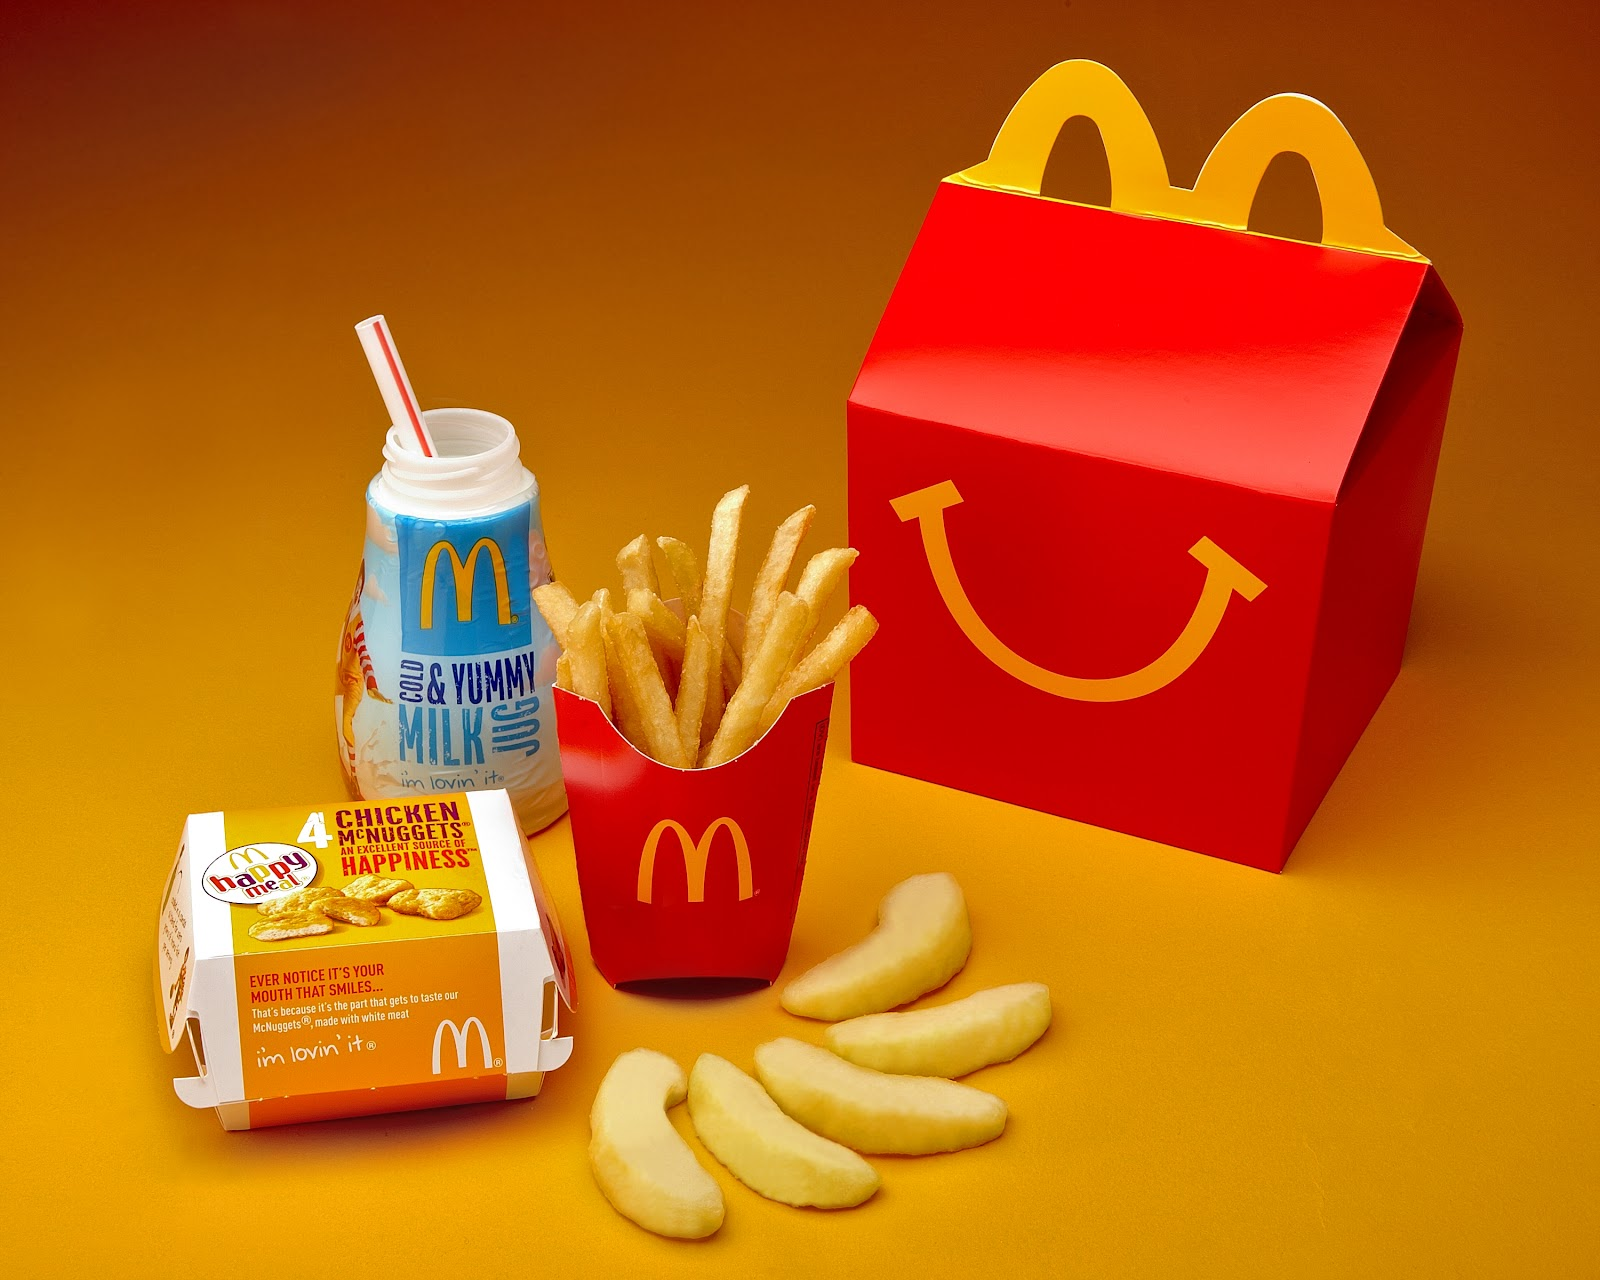 balanced meal they can feel good about mcdonald s happy meal